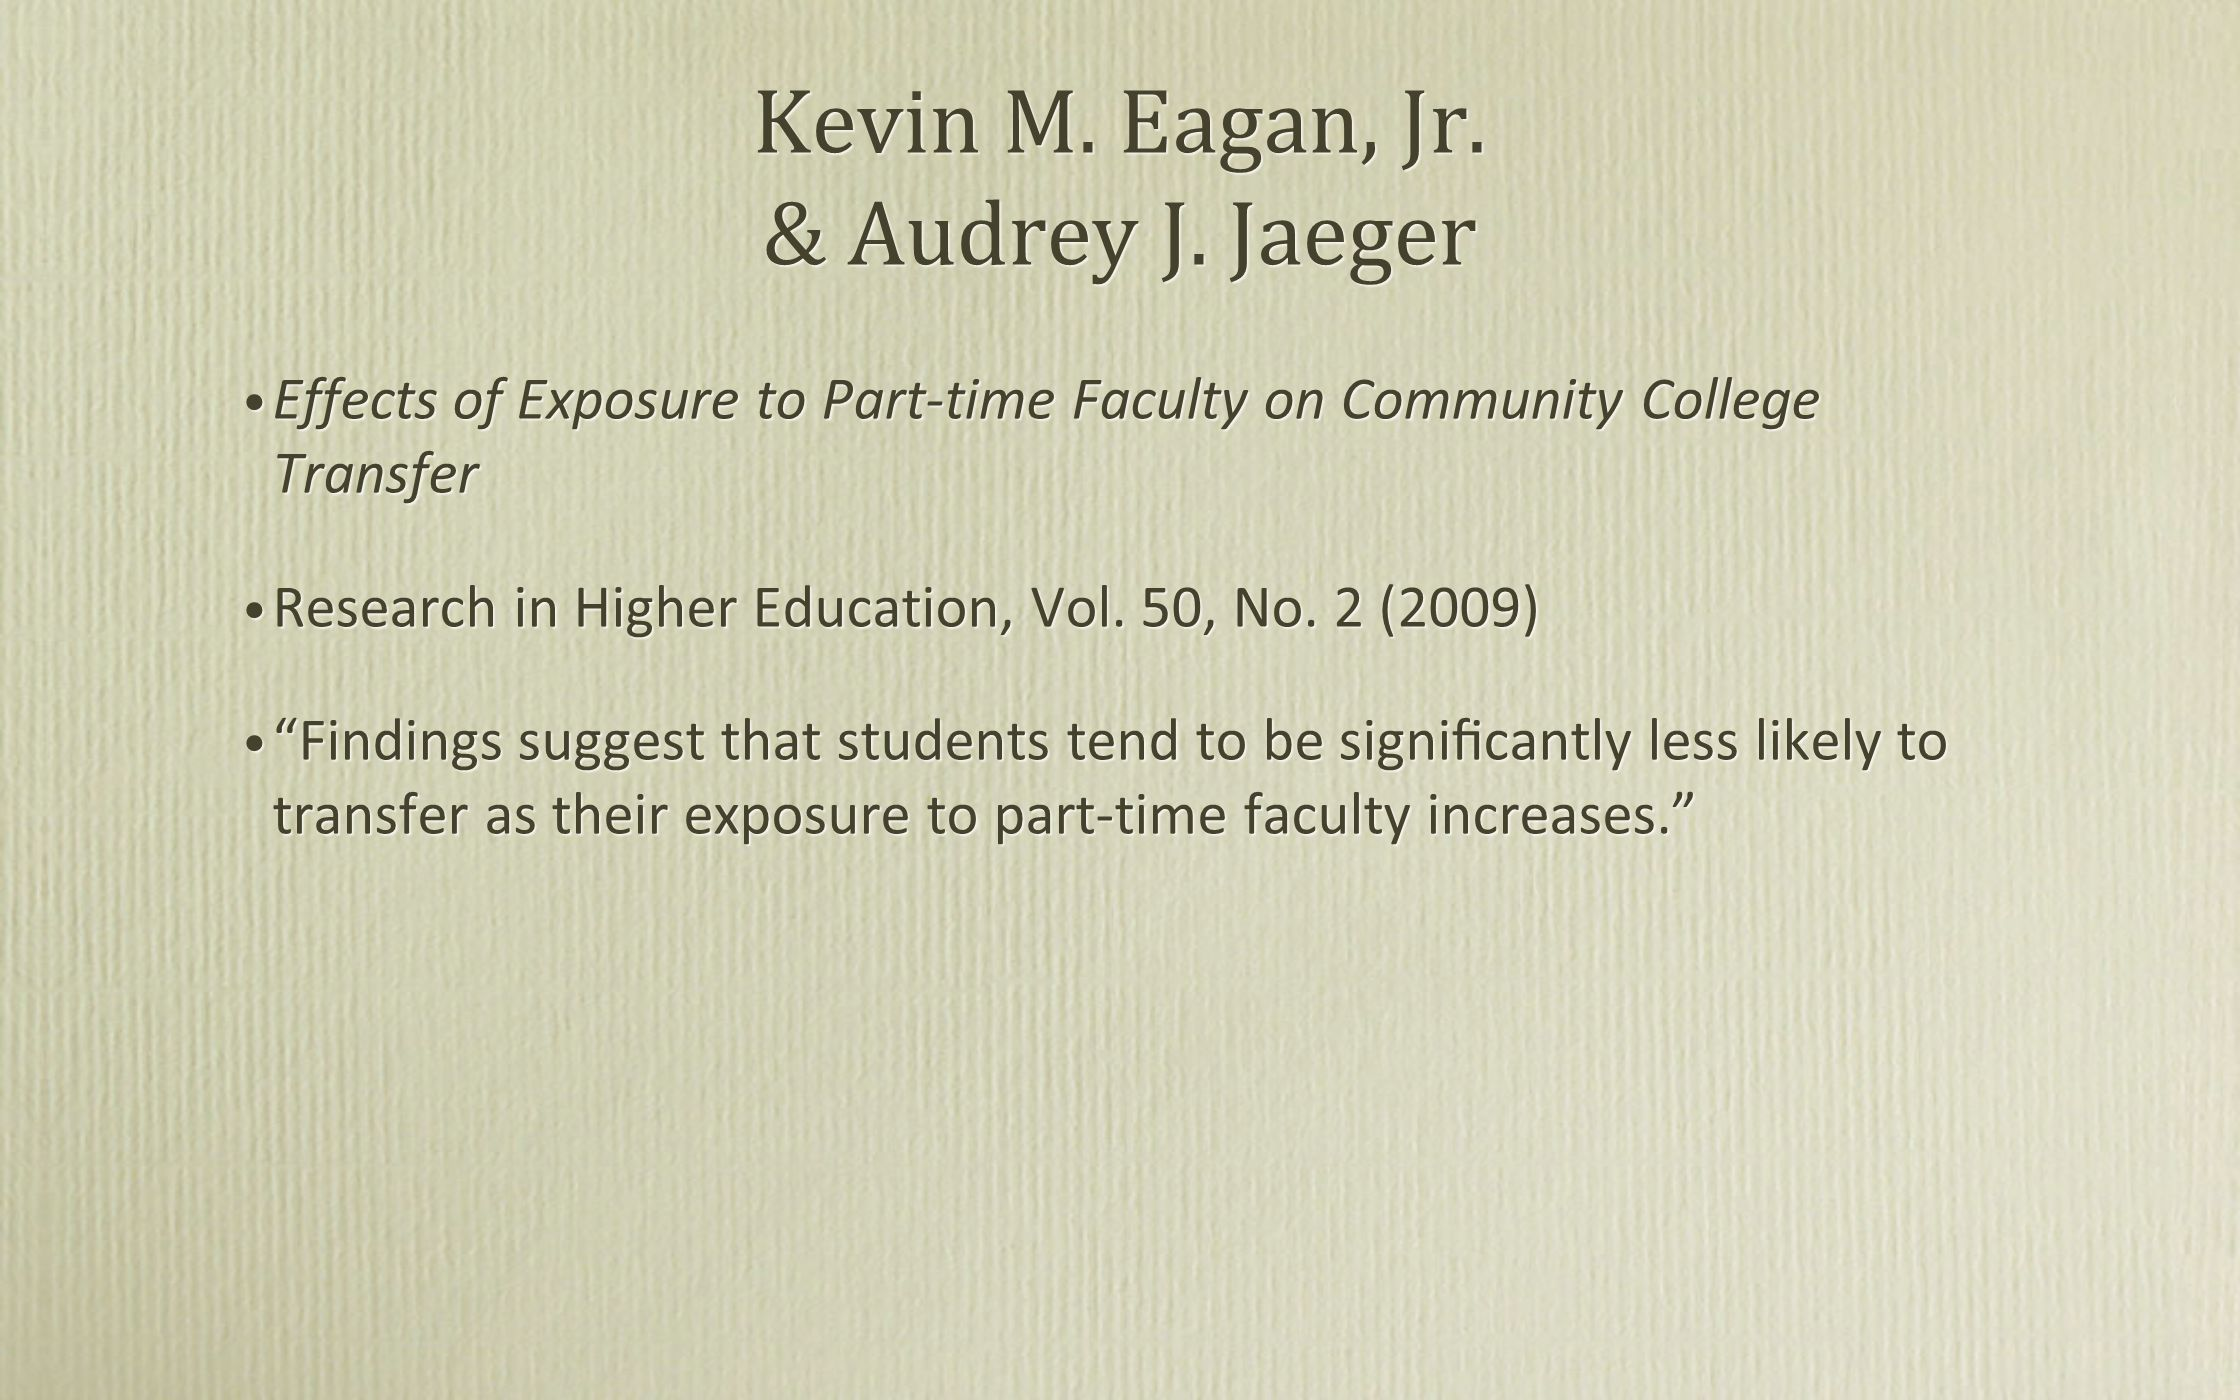 Kevin M. Eagan, Jr. & Audrey J. Jaeger Effects of Exposure to Part-time Faculty on Community College Transfer Research in Higher Education, Vol. 50, N